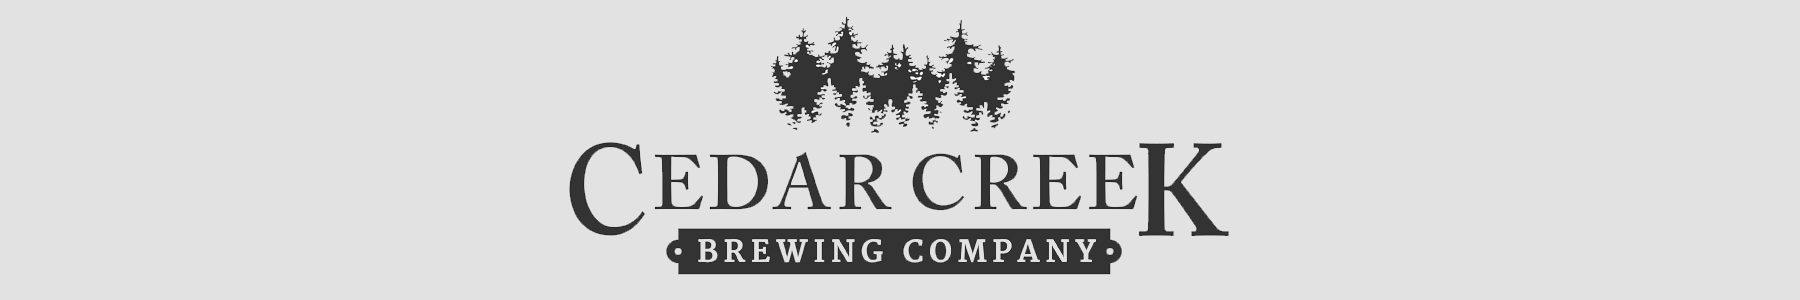 Cedar Creek Brewing Co, Martinsville, IN 46151 Logo